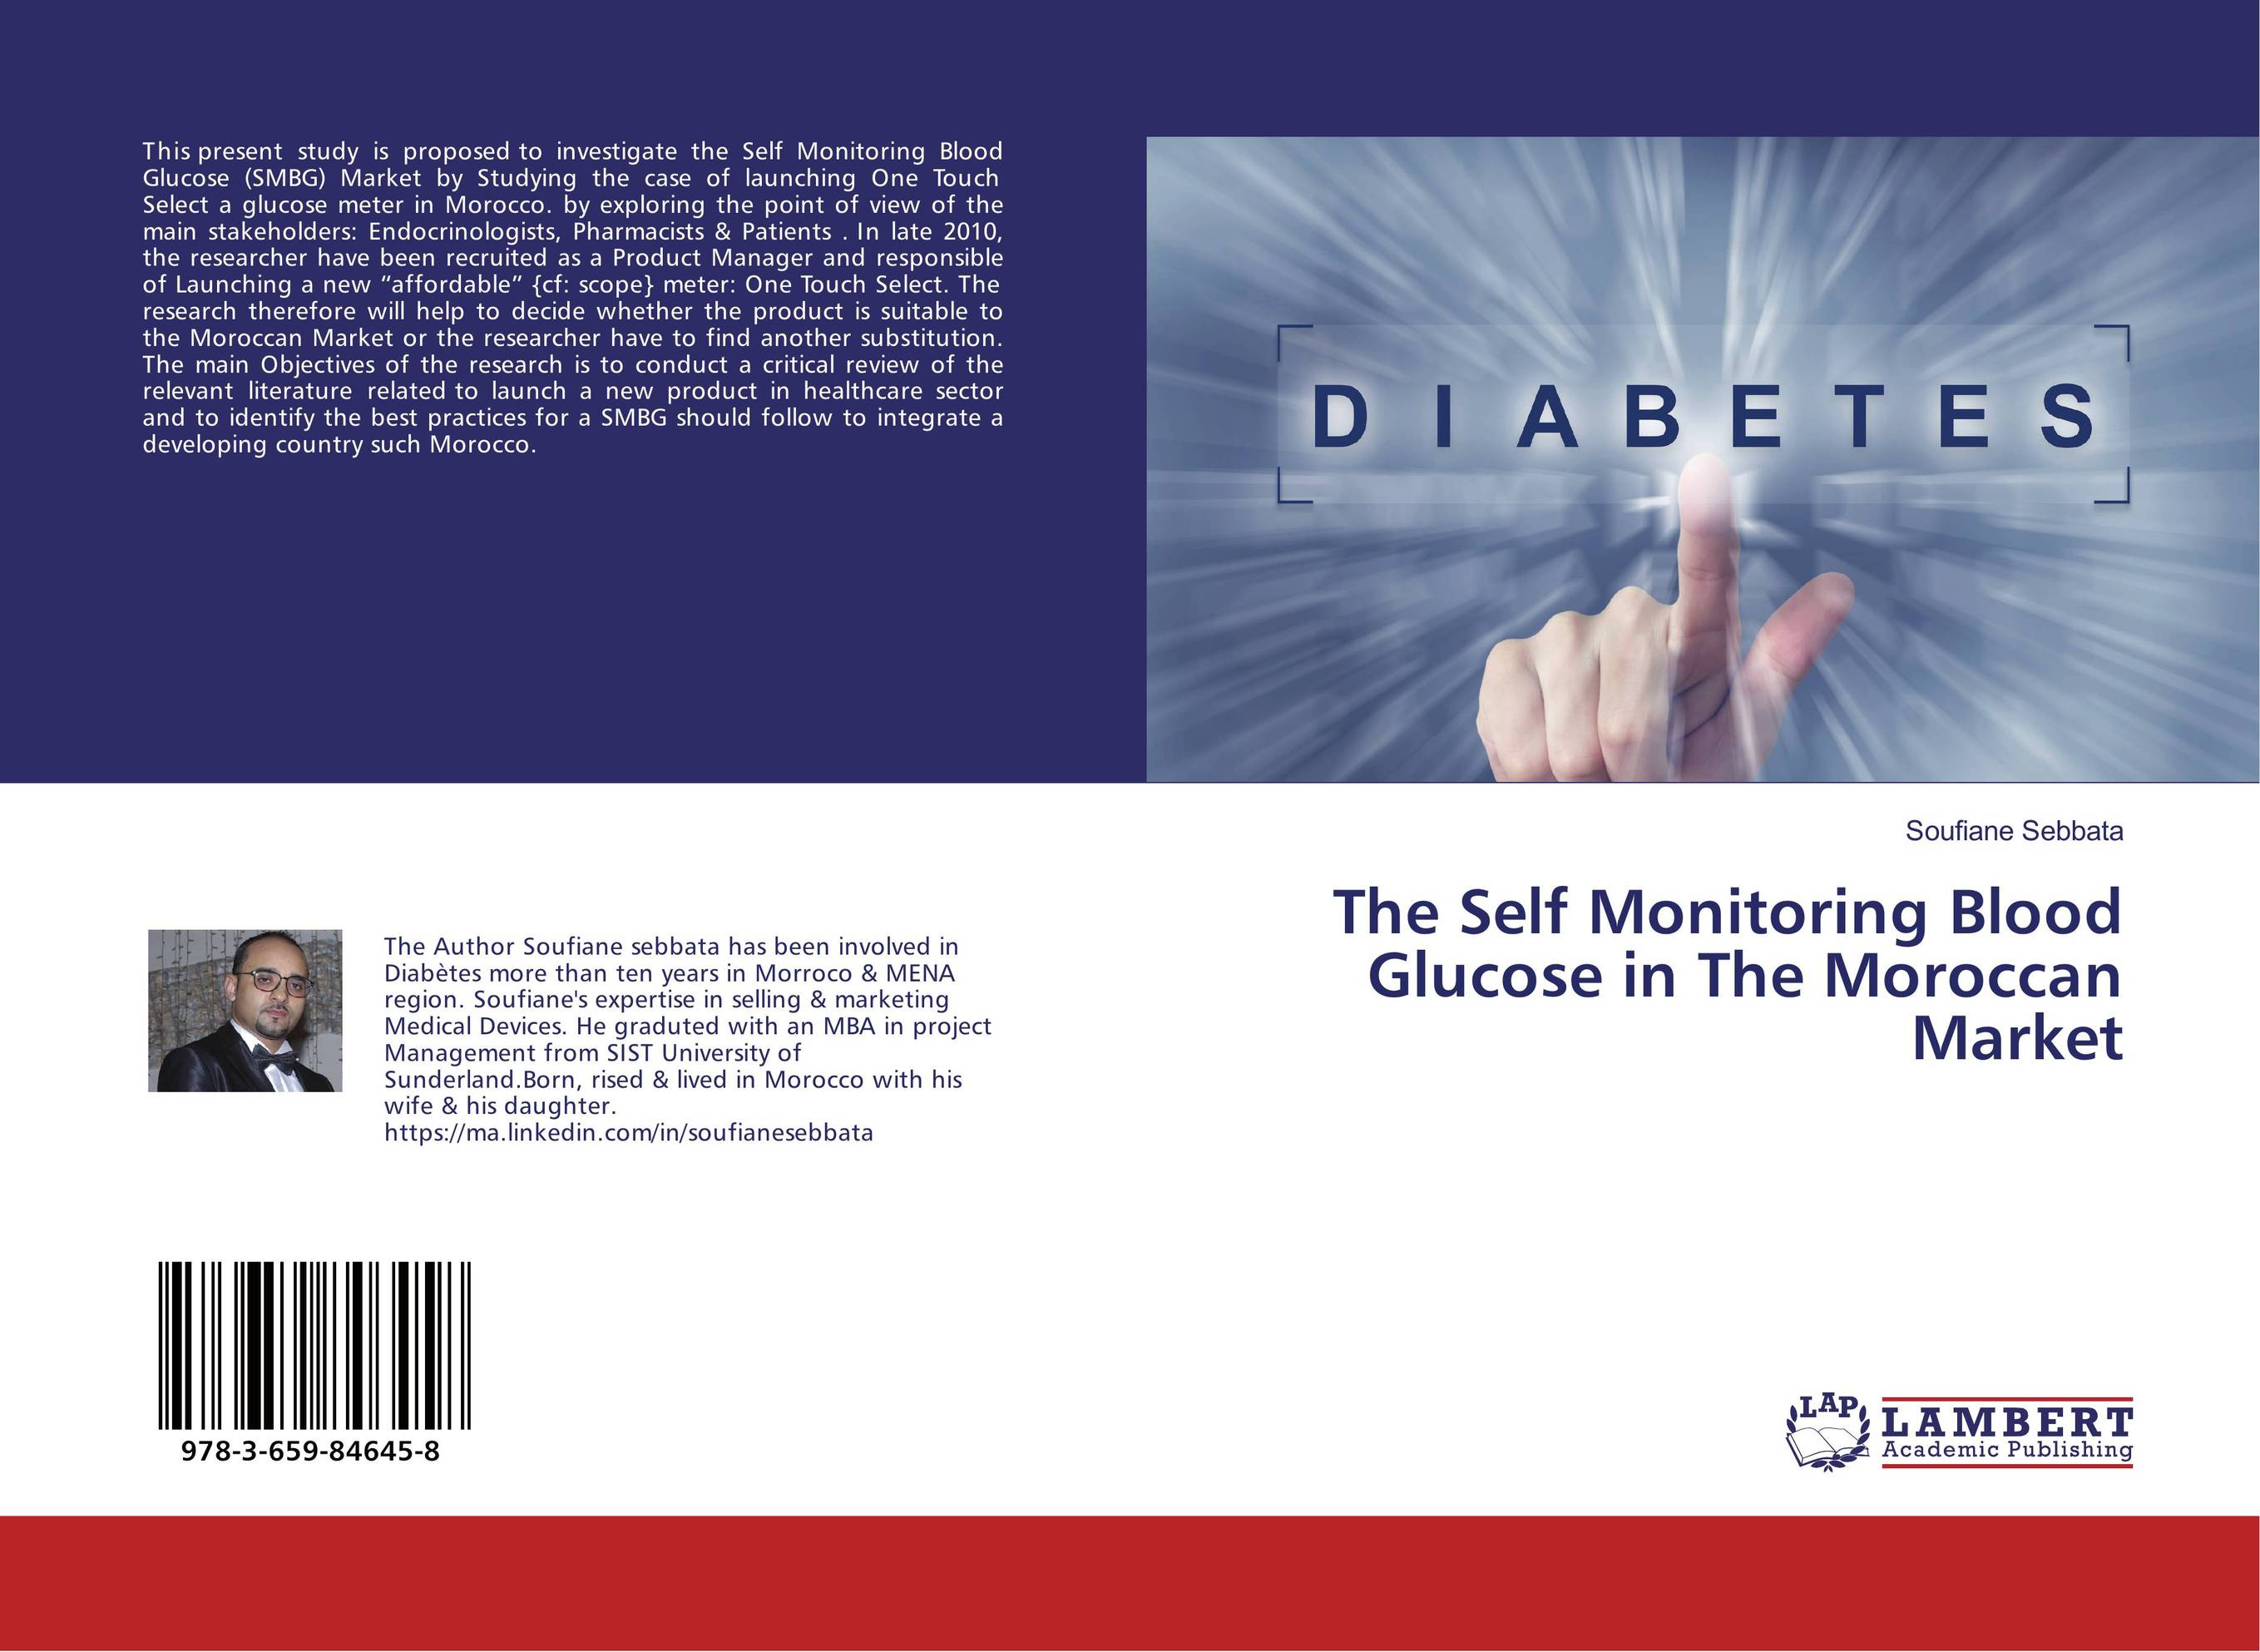 The Self Monitoring Blood Glucose in The Moroccan Market coldplay – a rush of blood to the head lp